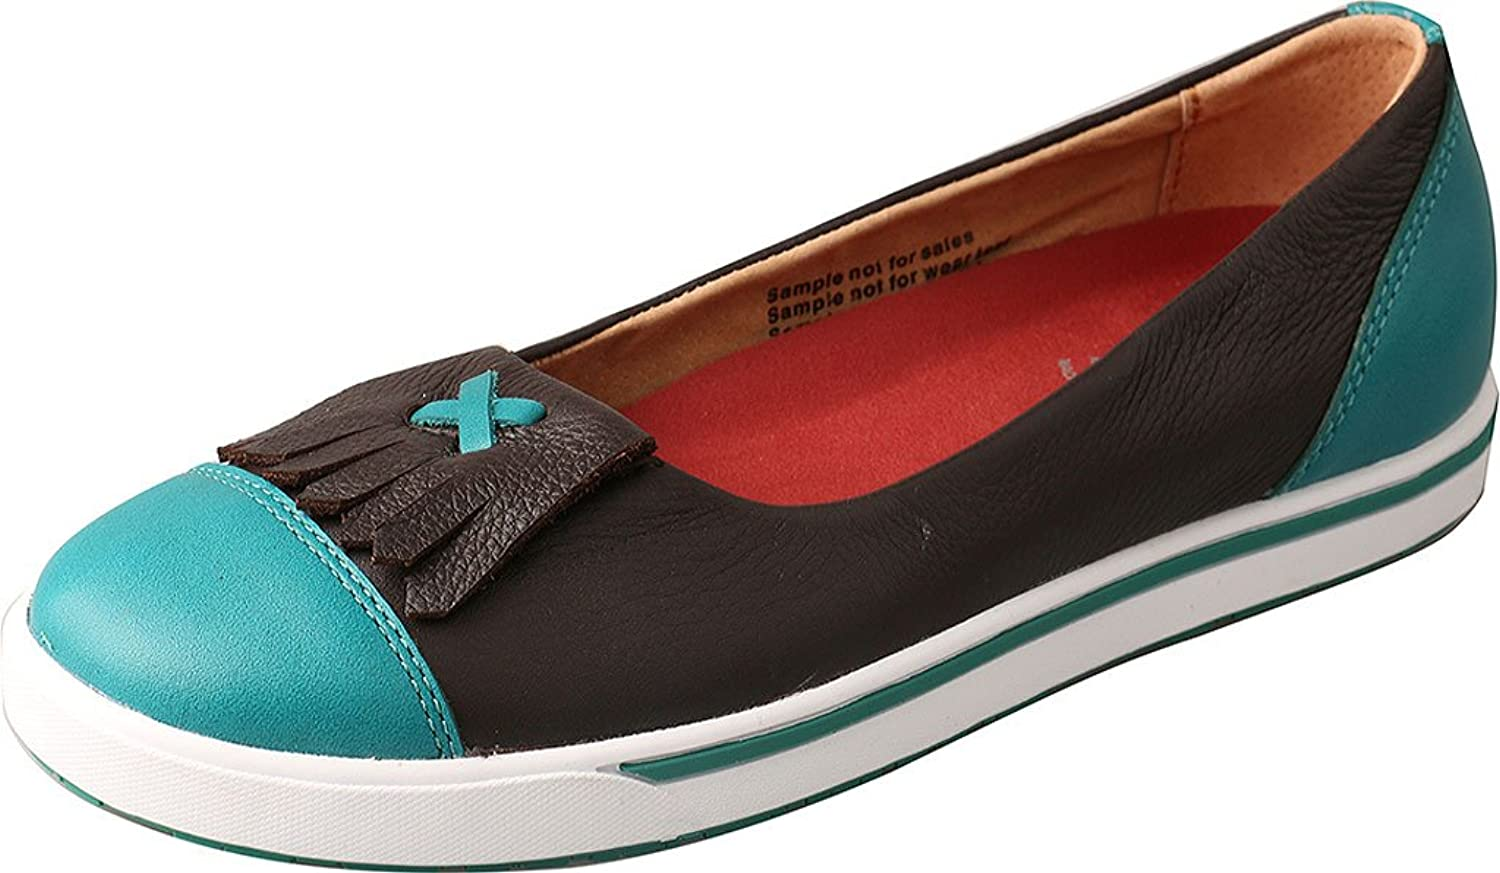 Twisted X Casual shoes Womens Slip On Round Choc Turquoise WCA0002